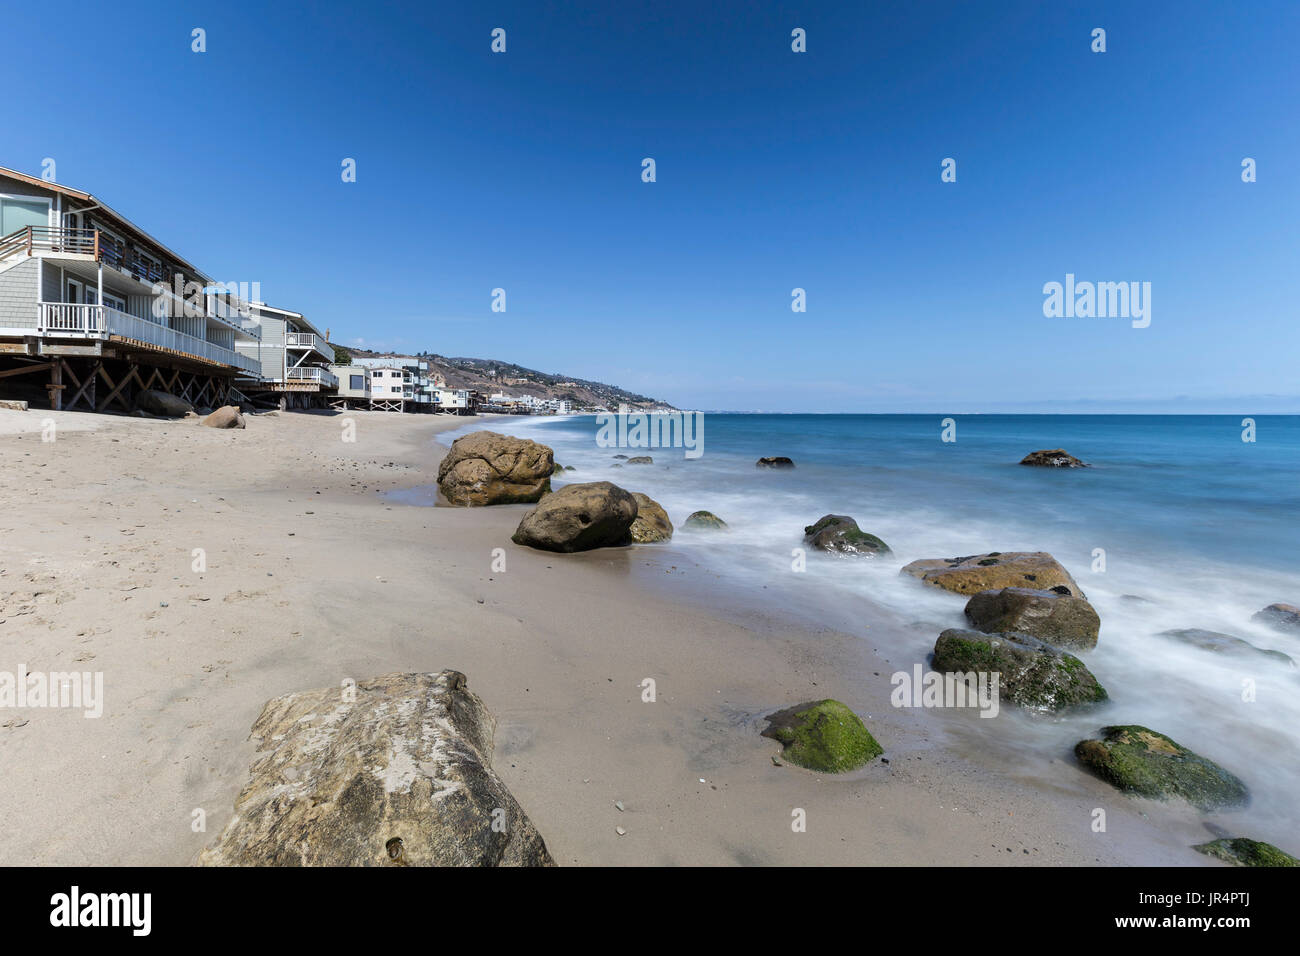 Oceanfront homes with motion blur water movement at Carbon Beach in Malibu, California. - Stock Image